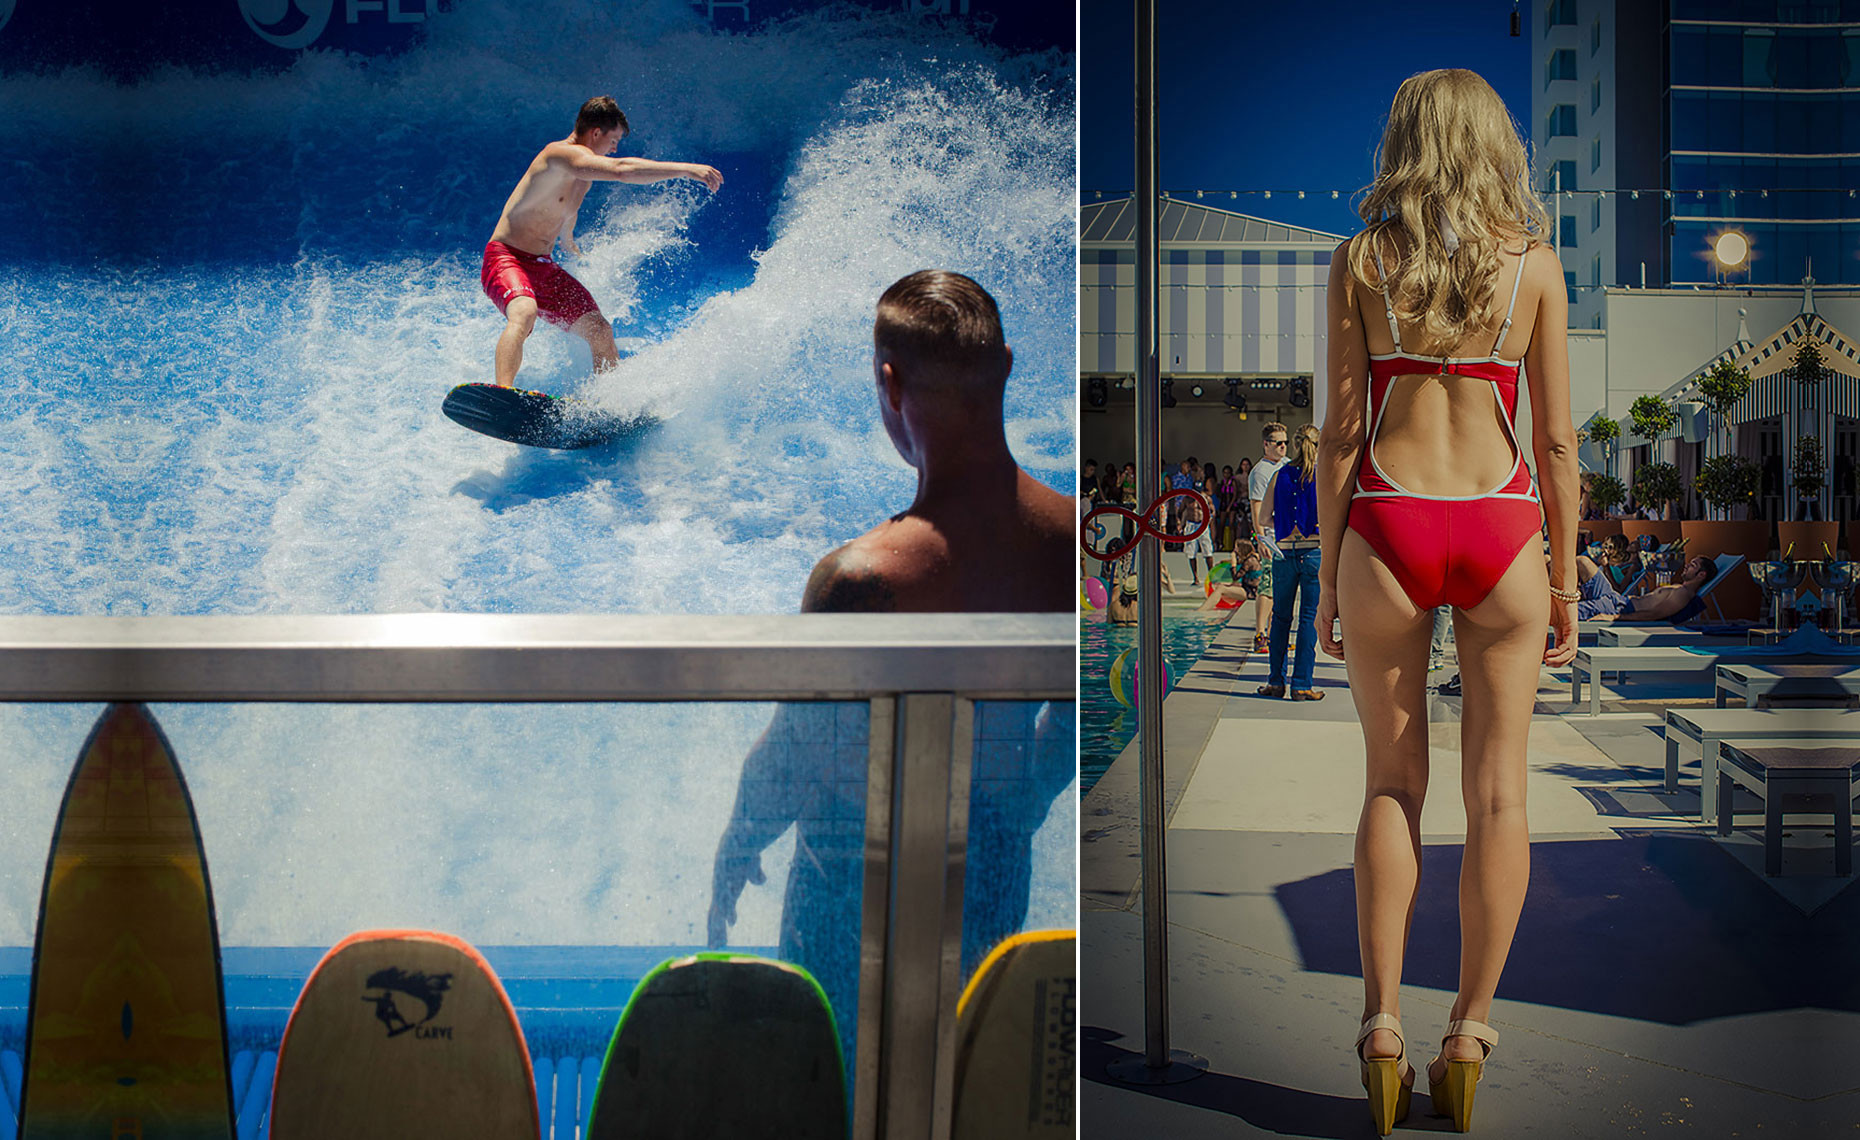 jeff-green-surfing-girl-in-bikini-at-sls-pool